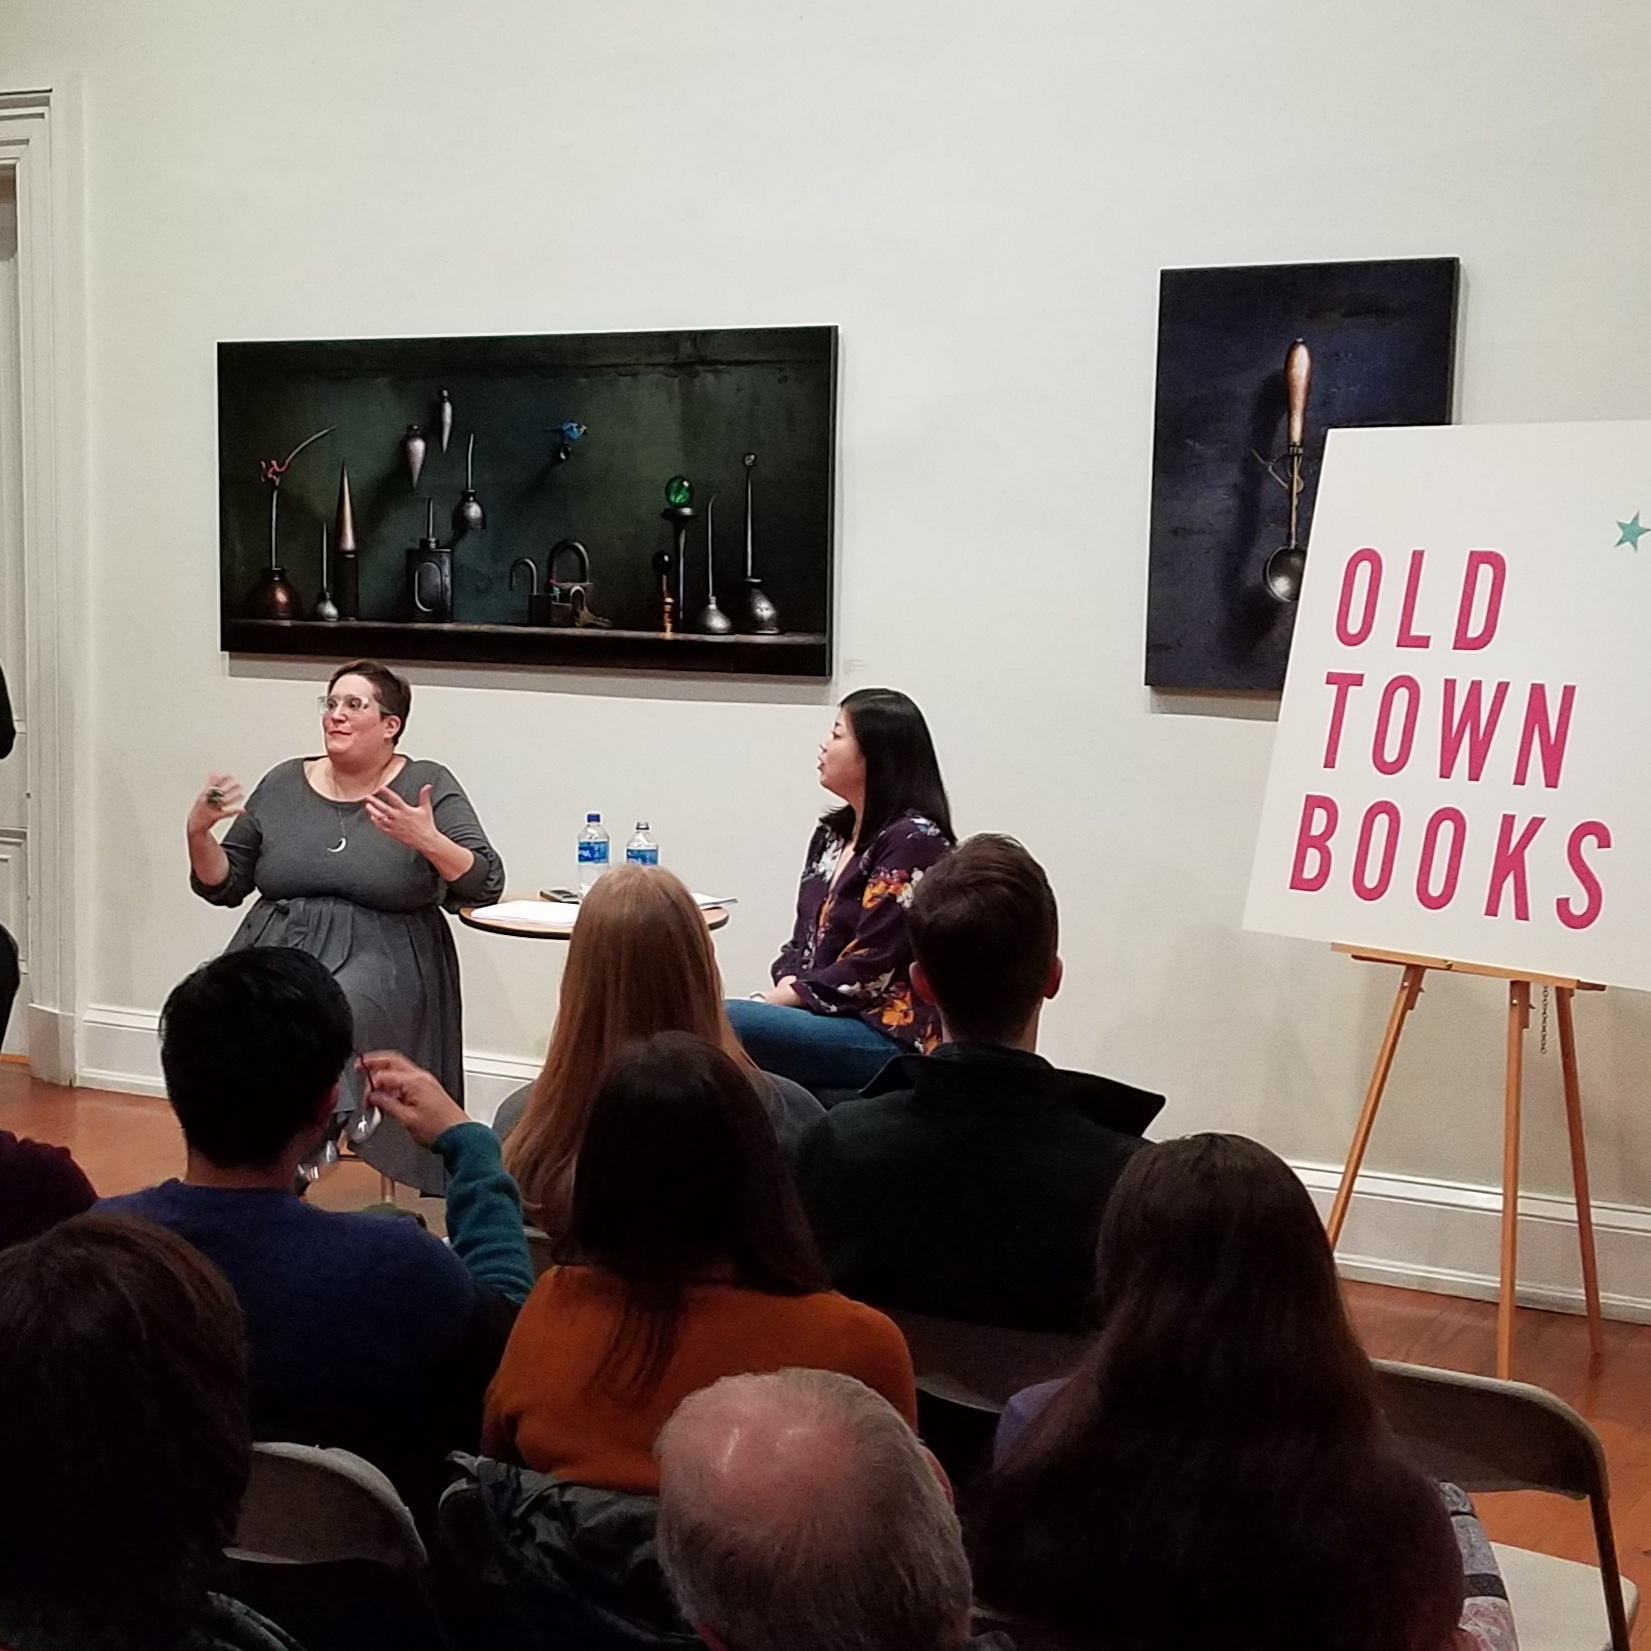 - Nicole Chung interviewed Carmen Maria Machado at the Old Town Books event, hosted at the Athenaeum of the Northern Virginia Fine Arts Association.